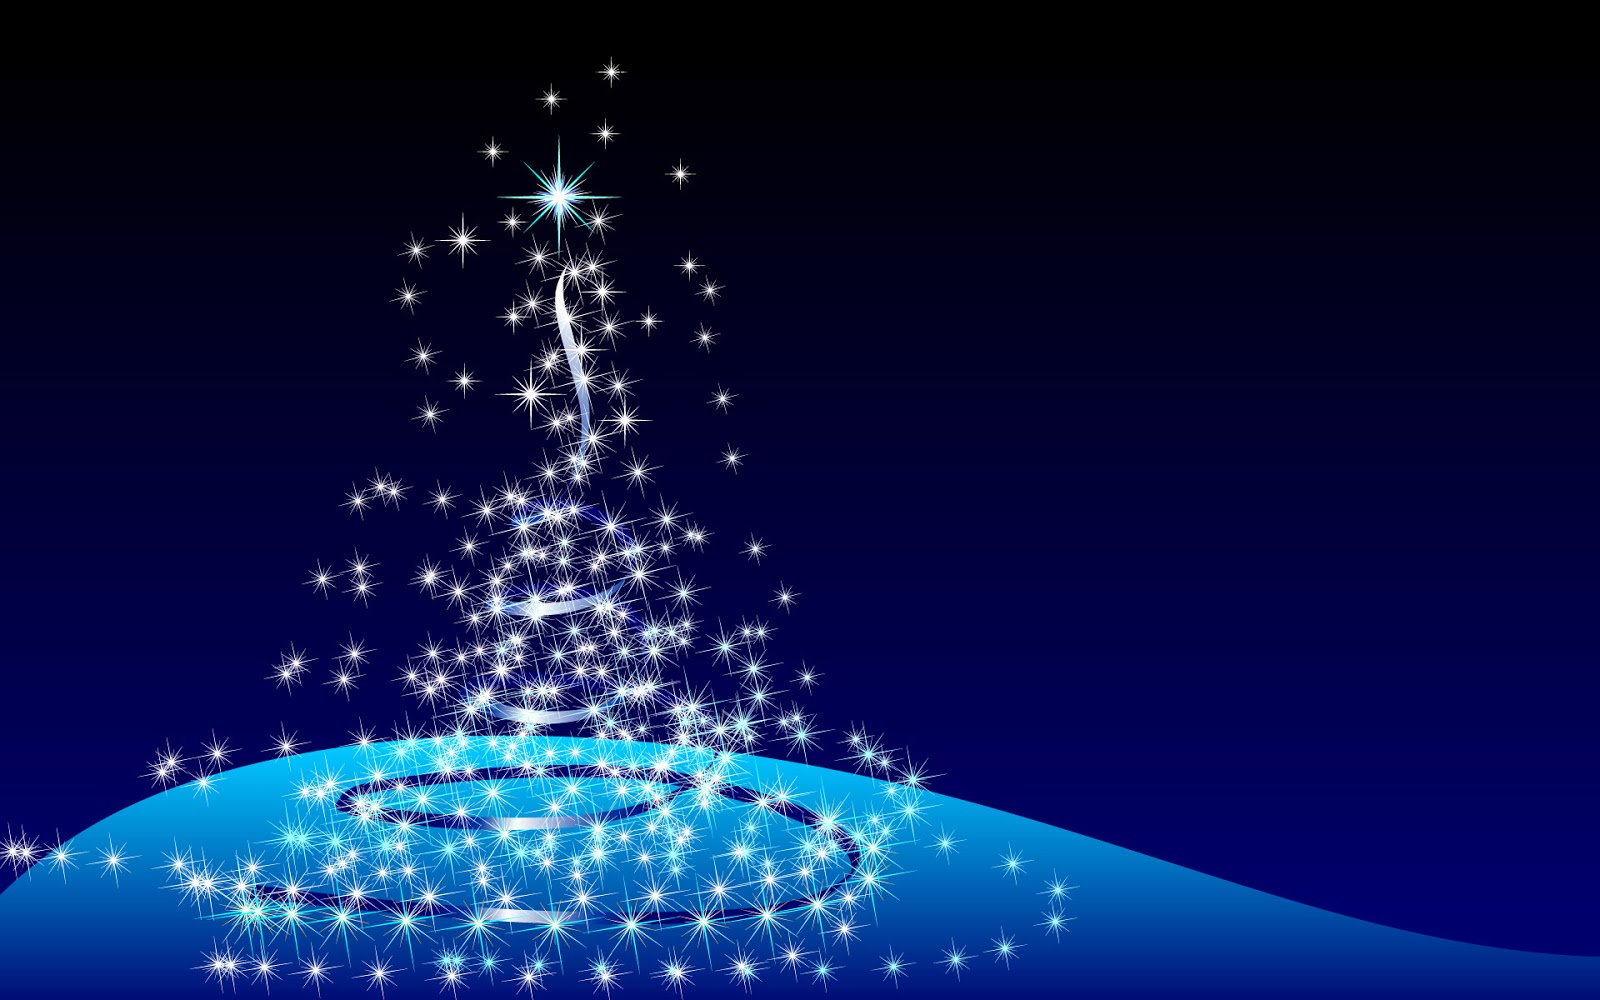 Lovely 3D Animation Christmas Tree in Blue Background 1600x1000